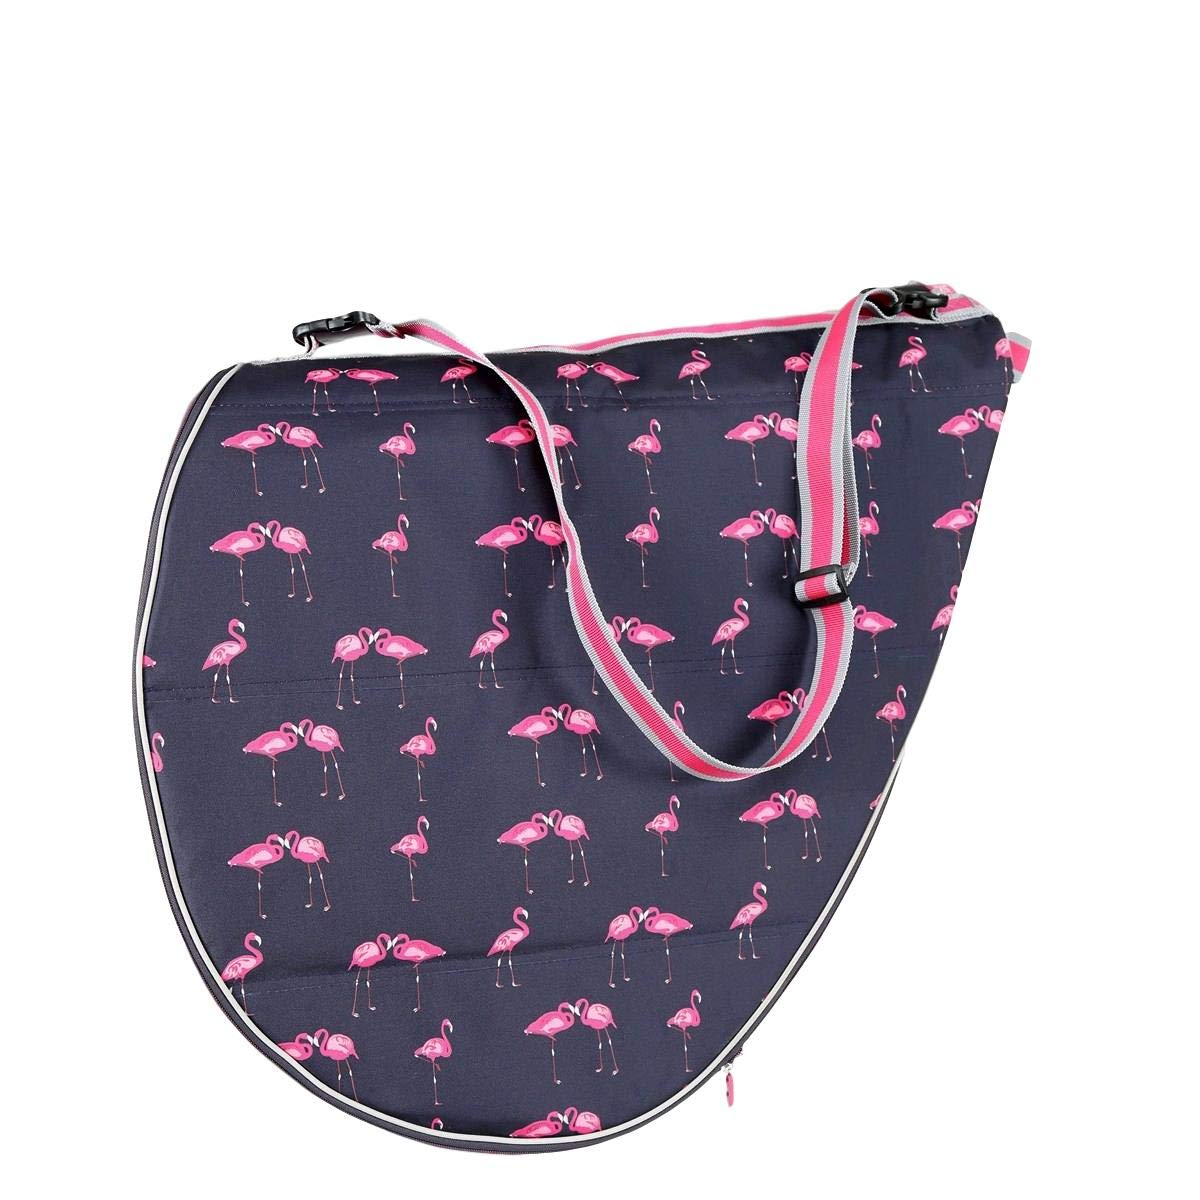 Shires Saddle Bag, Flamingo, One Size